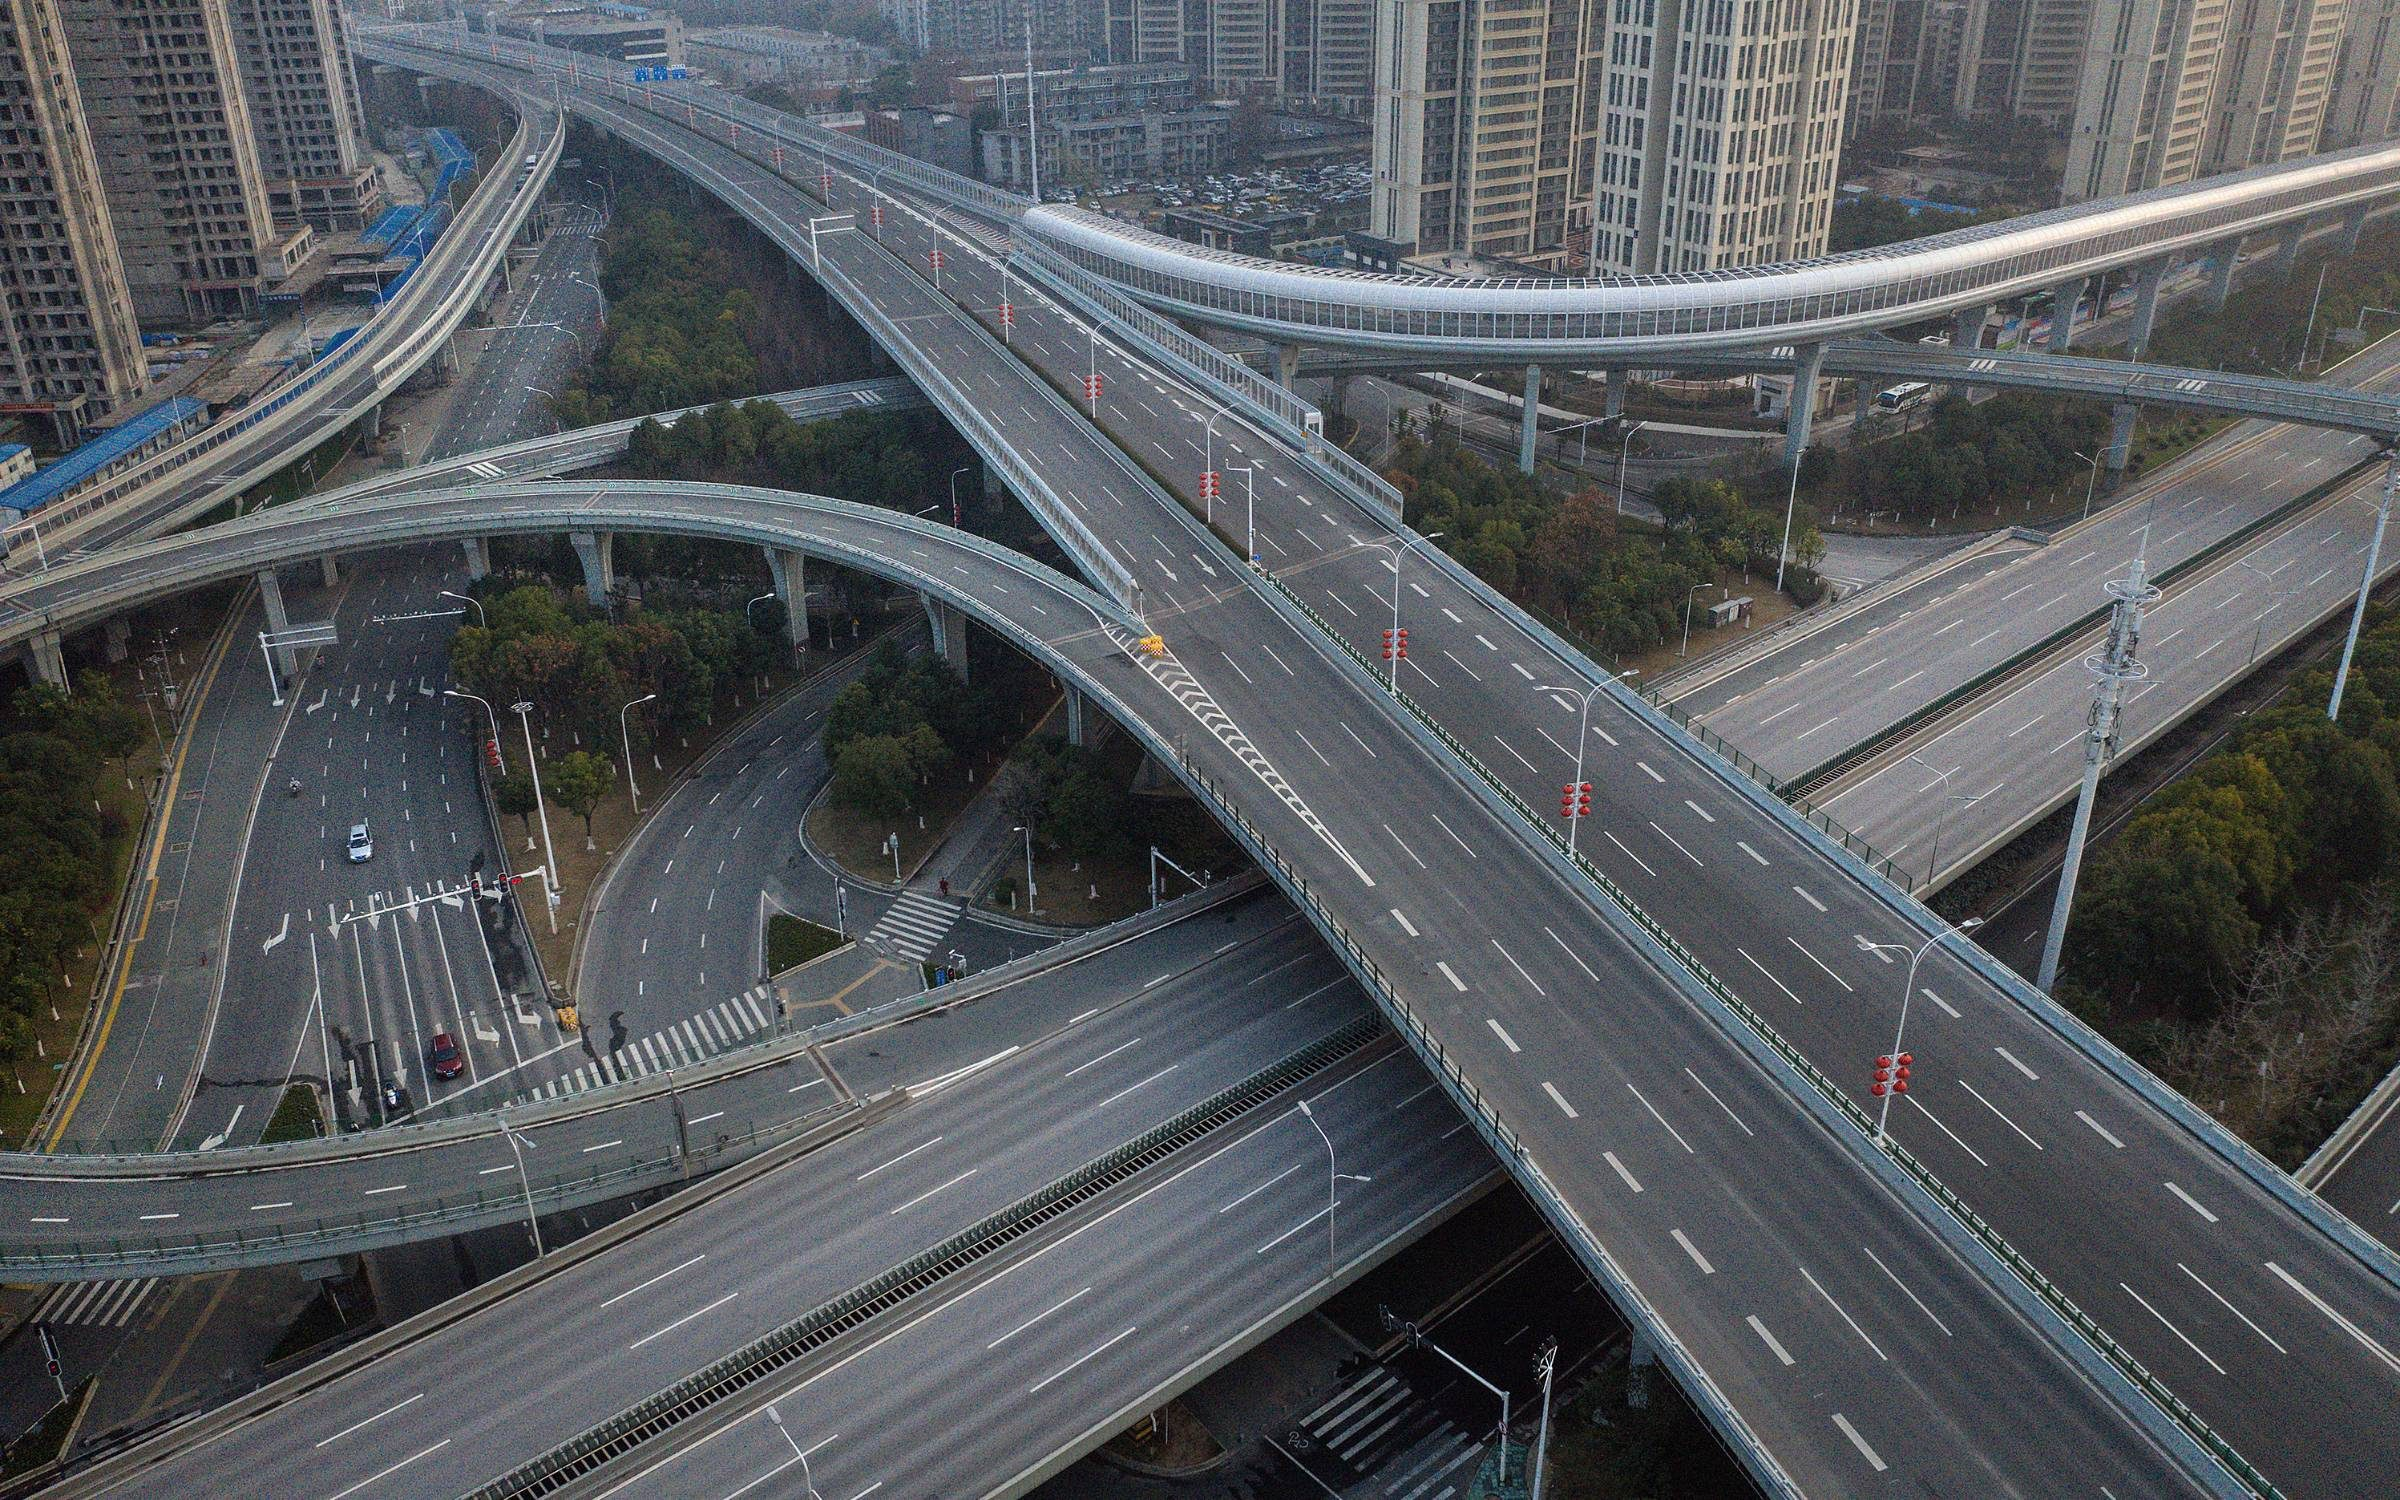 WUHAN, CHINA - FEBRUARY 03: (CHINA OUT) An aerial view of the roads and bridges are seen on February 3, 2020 in Wuhan, Hubei province, China. The number of those who have died from the Wuhan coronavirus, known as 2019-nCoV, in China climbed to 361 and cases have been reported in other countries including the United States, Canada, Australia, Japan, South Korea, India, the United Kingdom, Germany, France, and several others. (Photo by Getty Images)